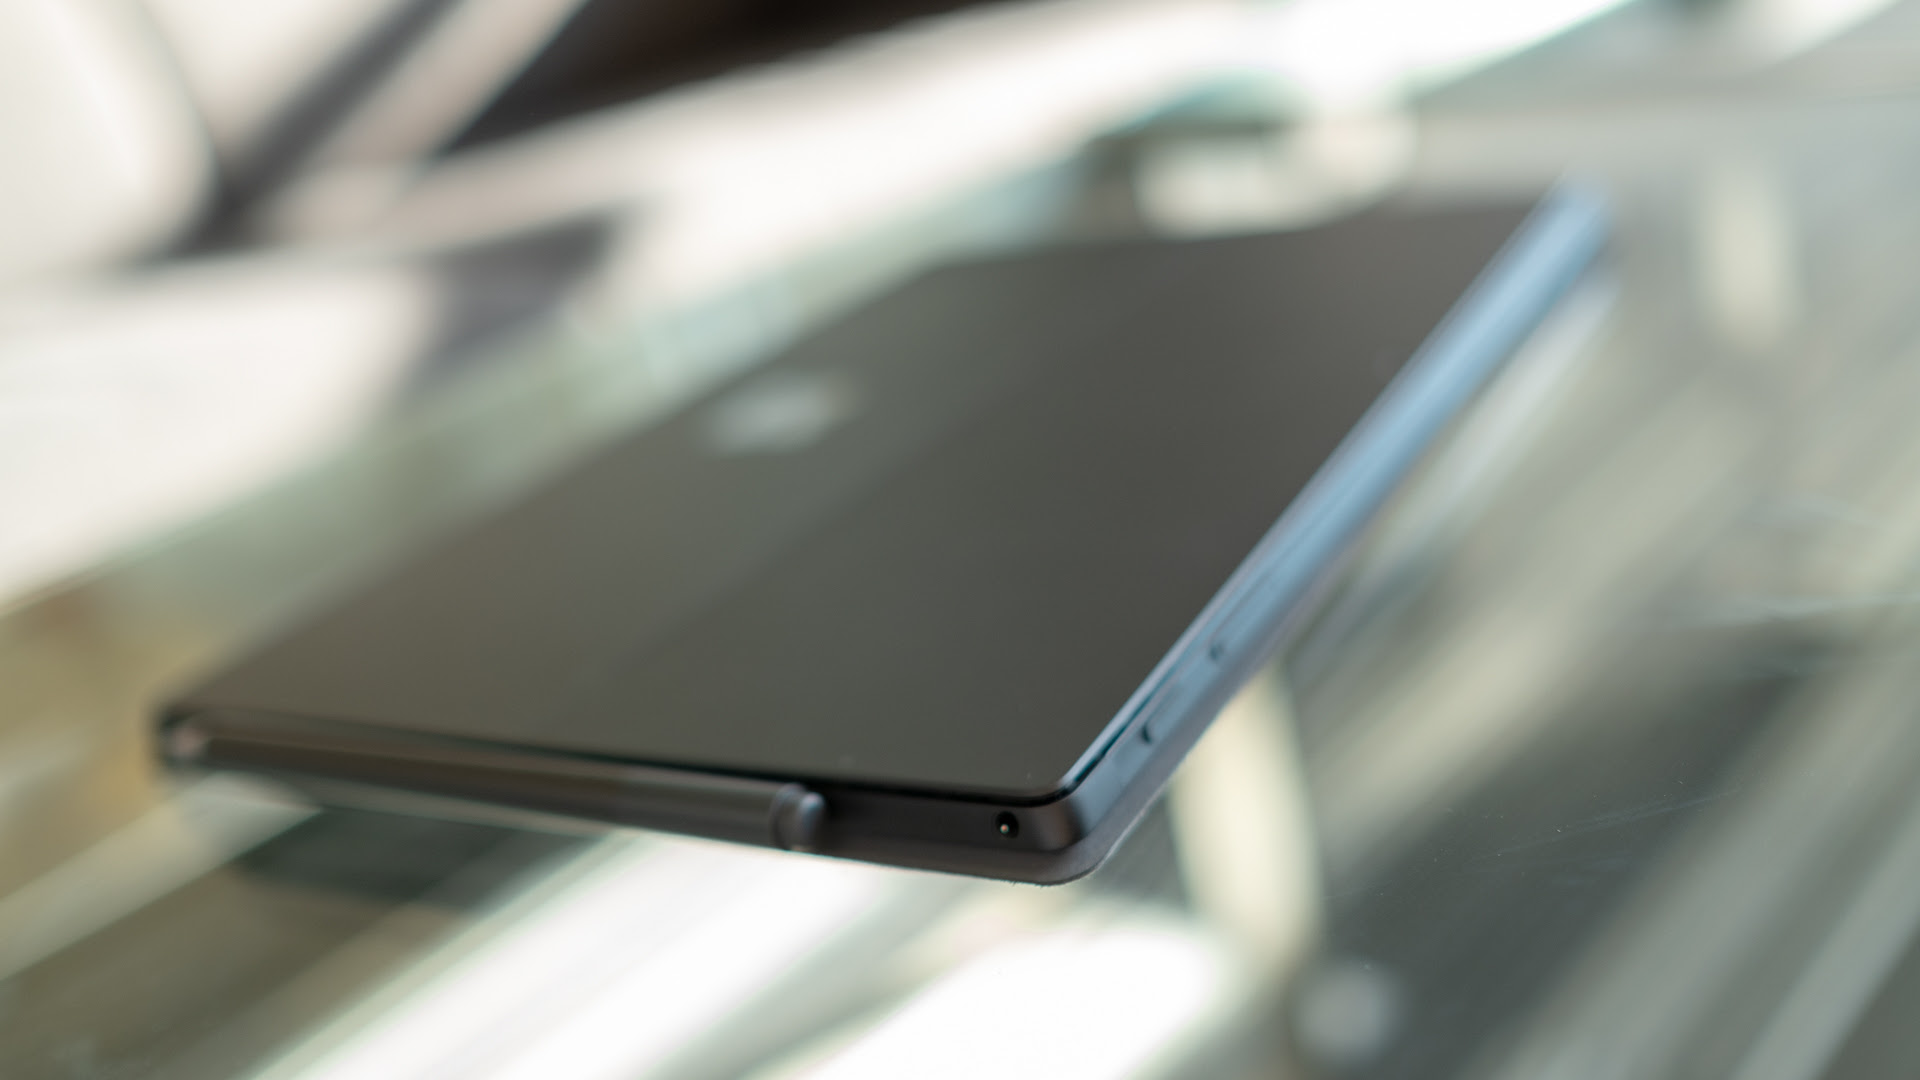 Microsoft Surface Pro 7: what we want to see